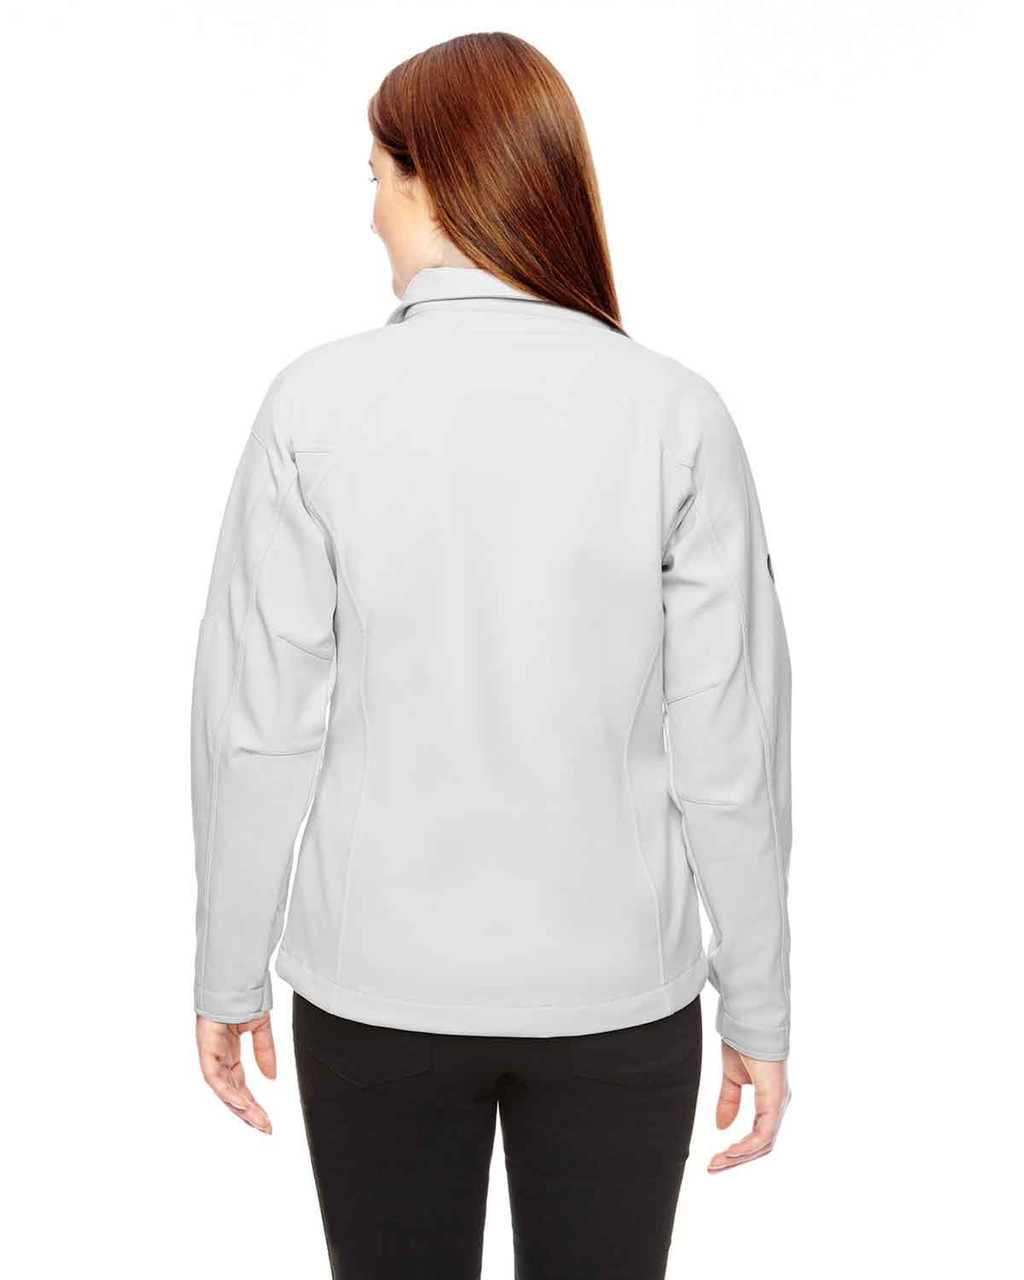 Glacier Grey - Back, 85000 Marmot Ladies' Gravity Jacket | BlankClothing.ca